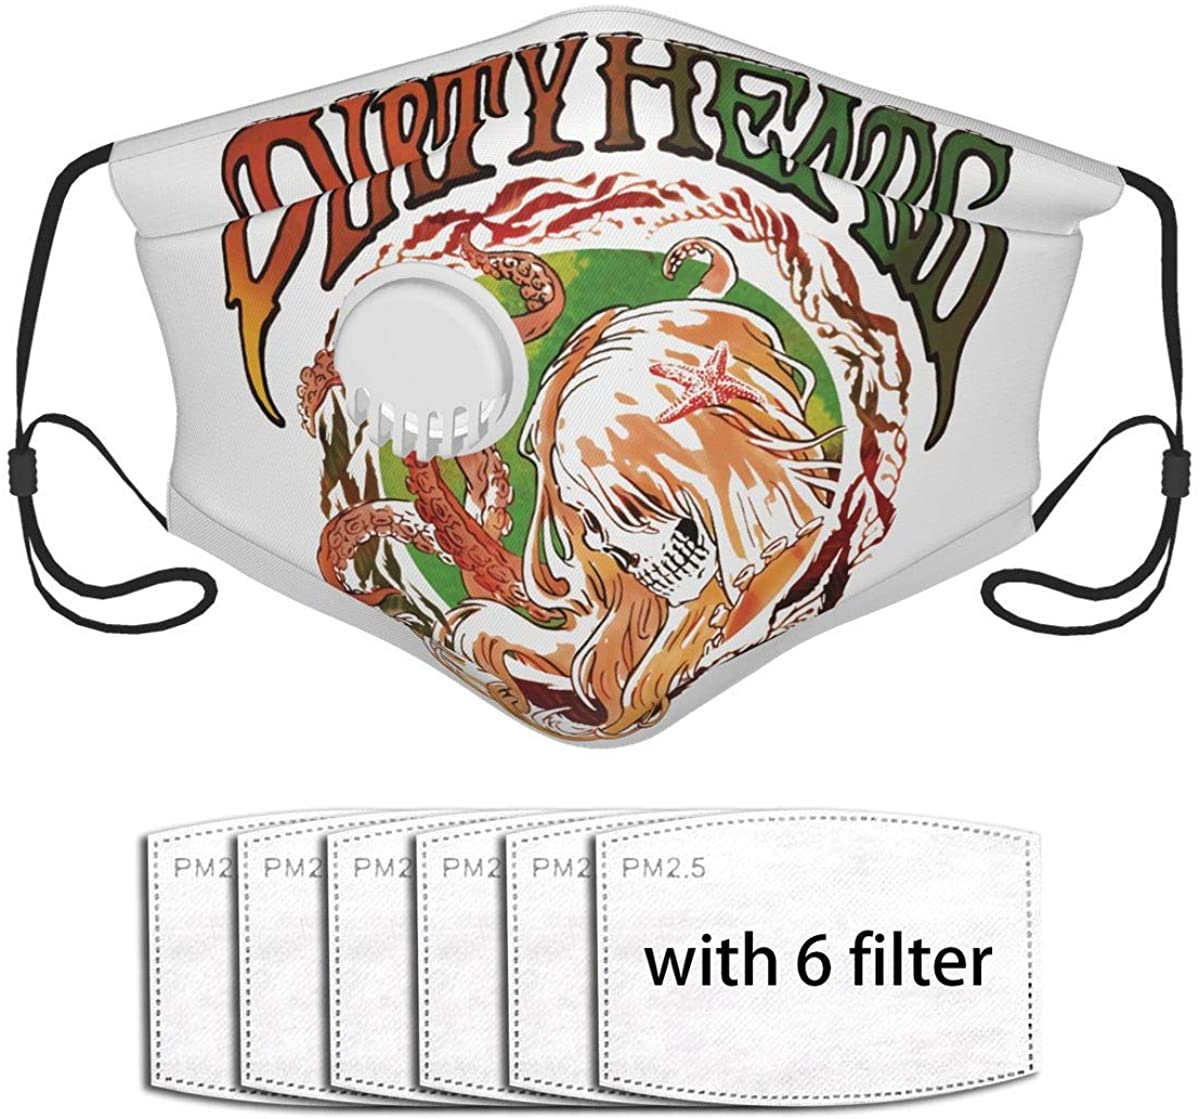 D-I-R-T-Y Heads Dust With A Valve Is Soft Breathable Water-Repellent And The Buckle Can Be Adjusted For Tightness